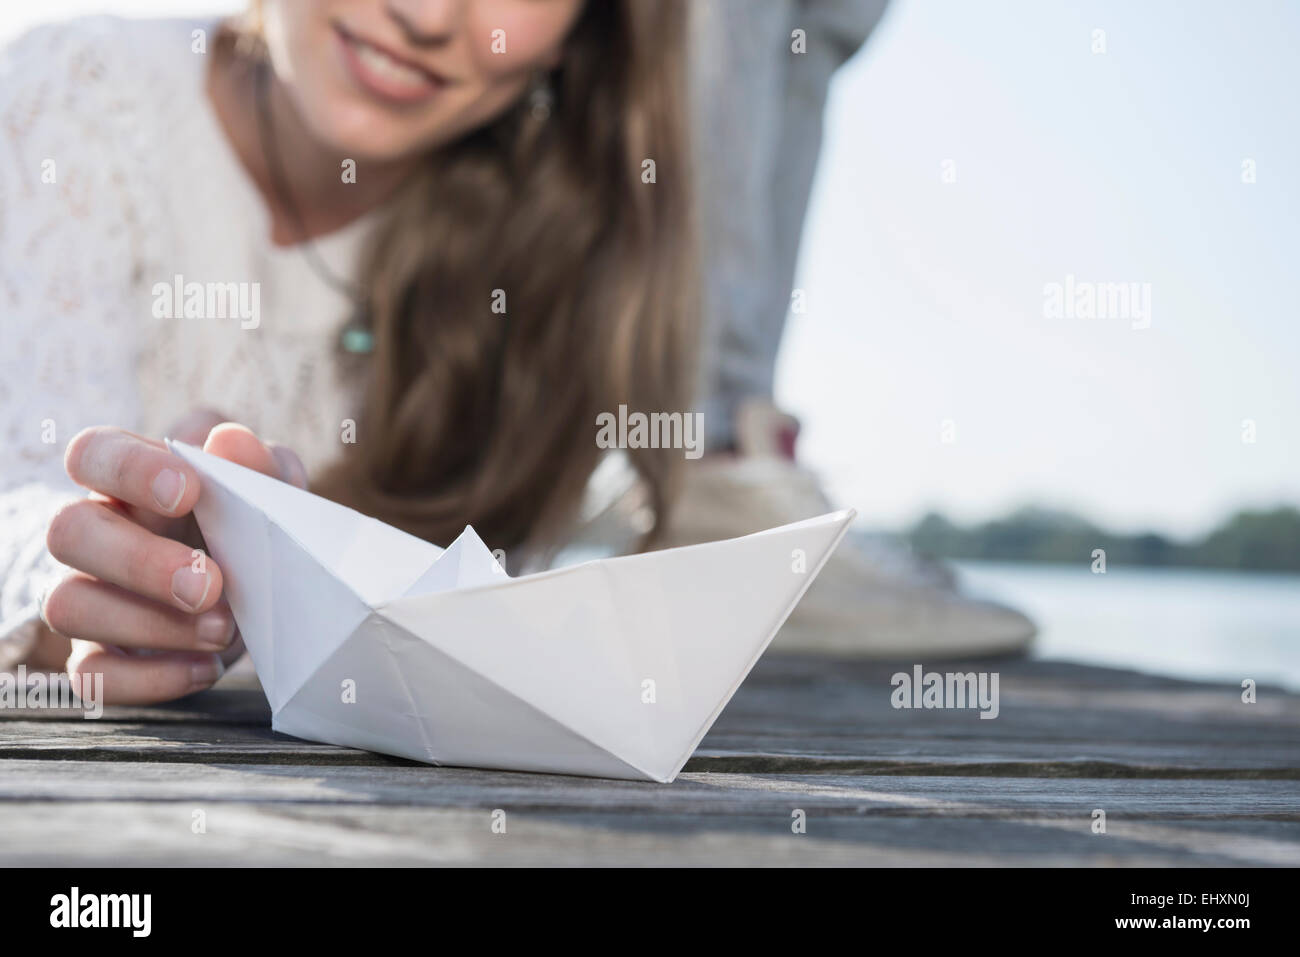 Close up woman holding white paper boat détail Photo Stock